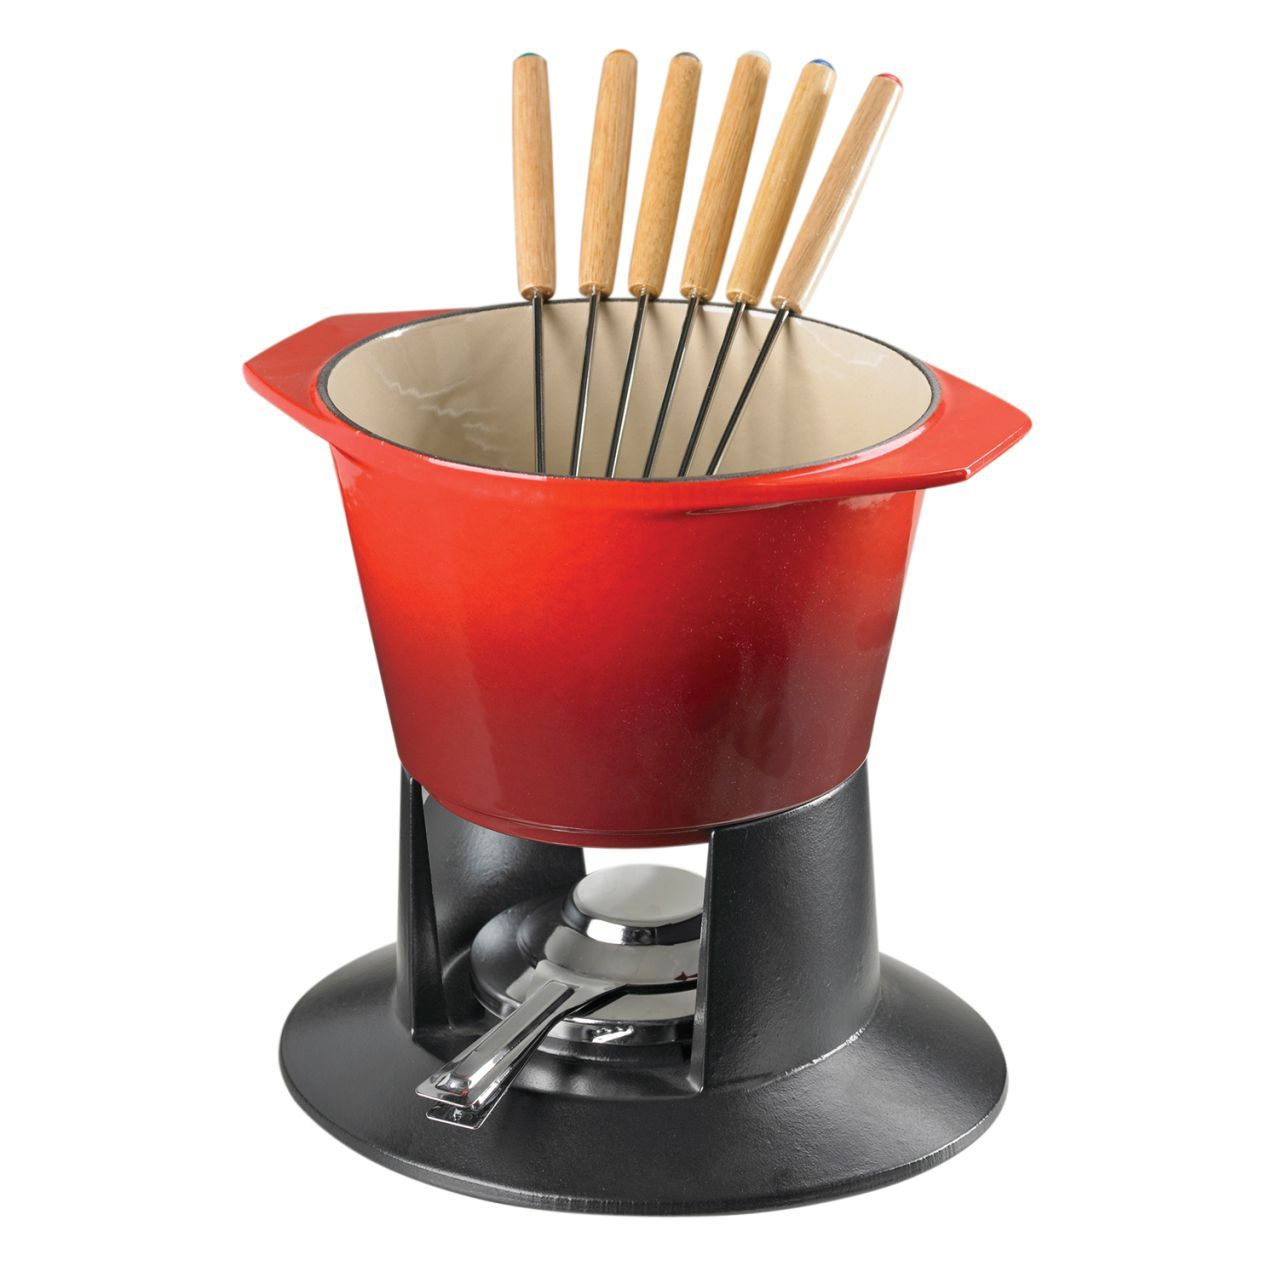 Family Night Just Got Much More Tasty And Fun With This Le Creuset Cherry Fondue Pot Cut Veggies Up Heat The Creamy Sharp Cheese In